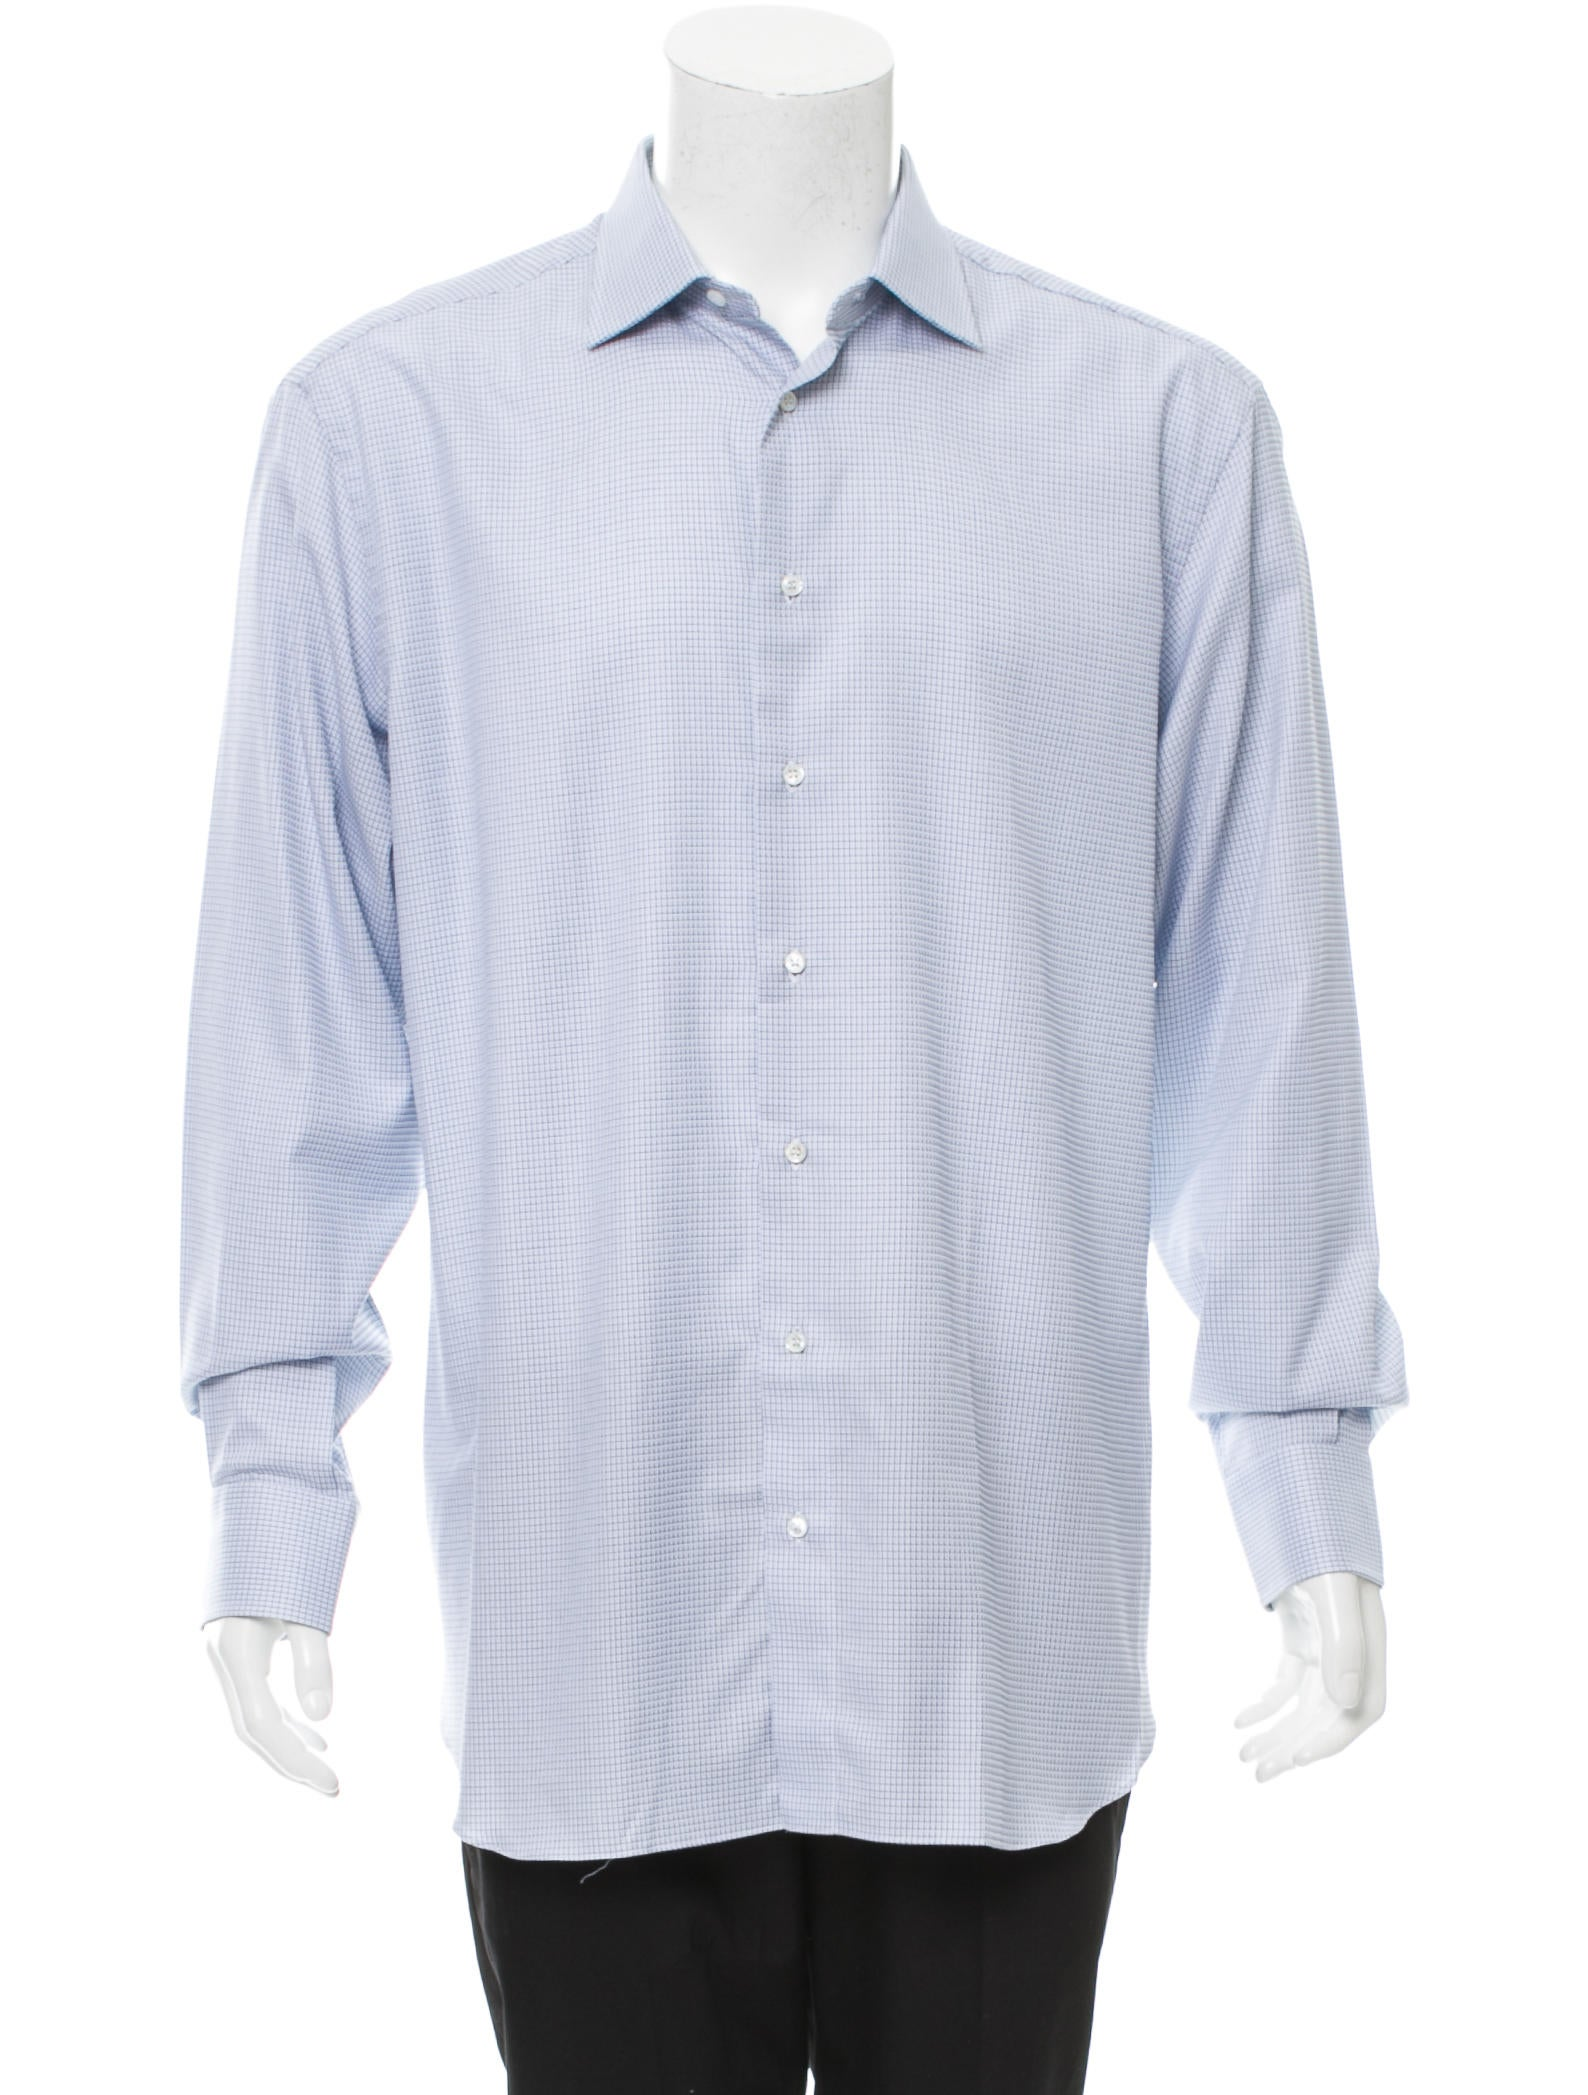 Find Men's Long Sleeve Shirts at lidarwindtechnolog.ga Enjoy free shipping and returns with NikePlus.